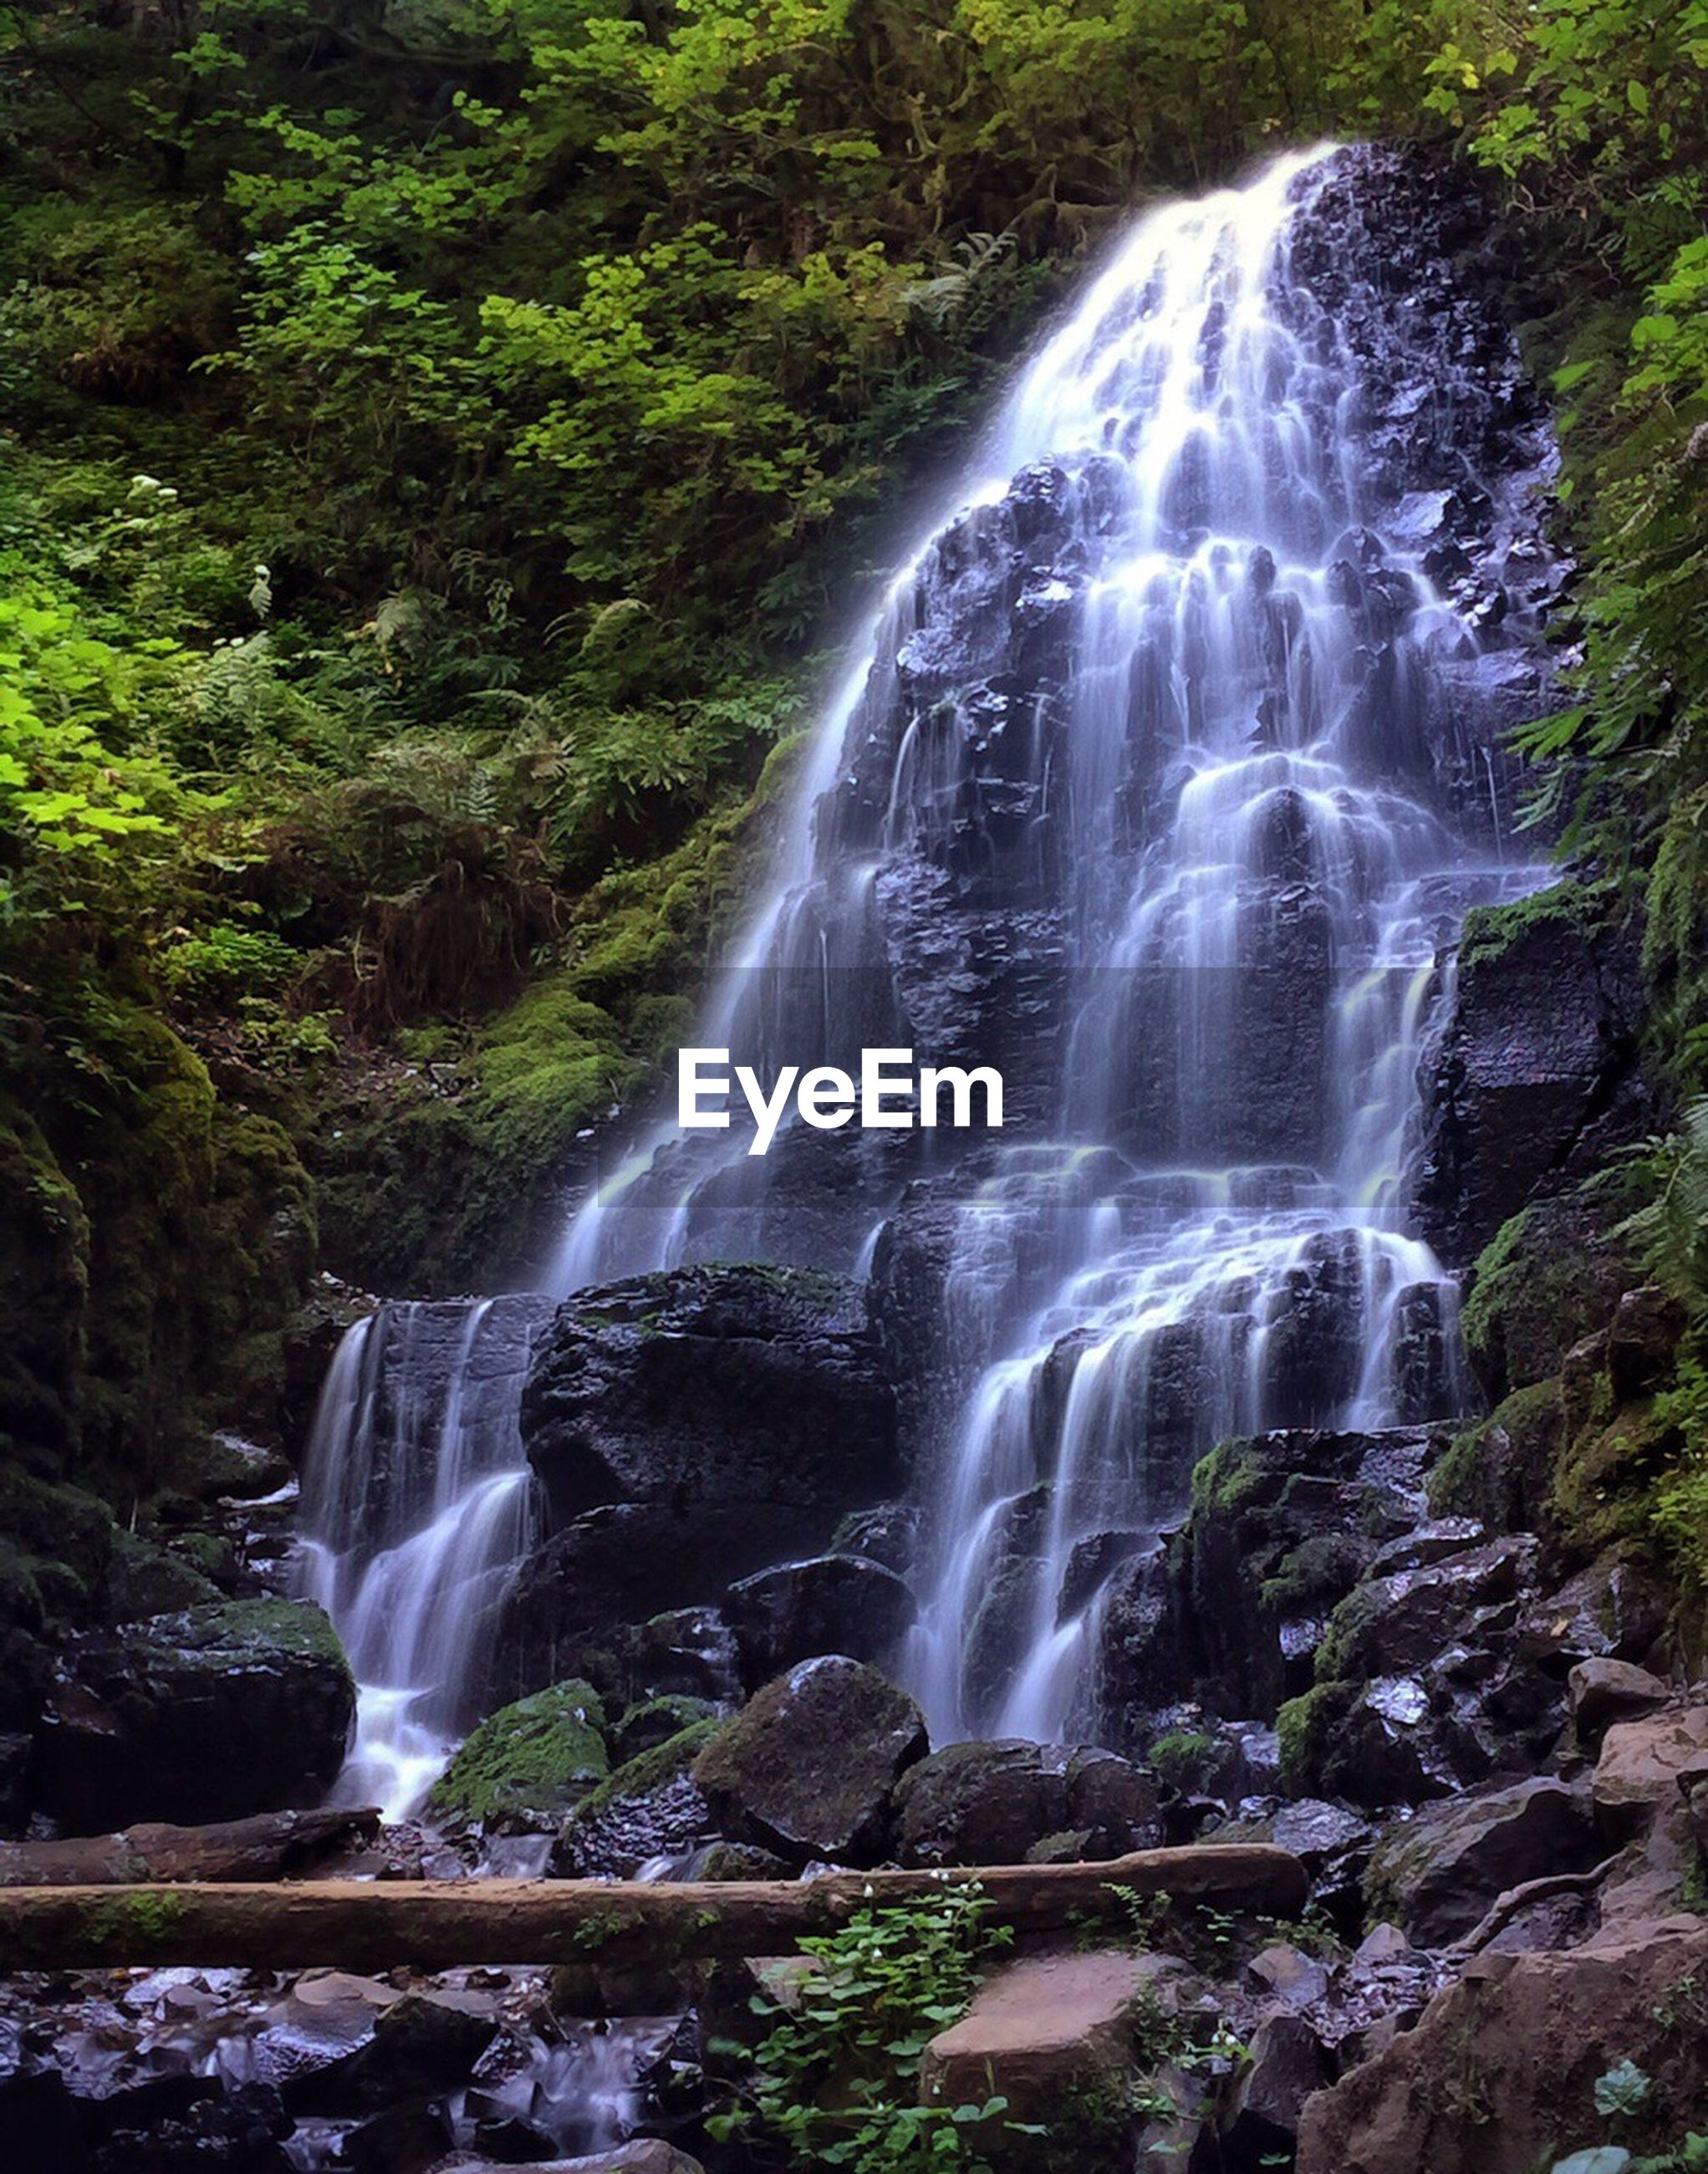 VIEW OF WATERFALL IN A FOREST